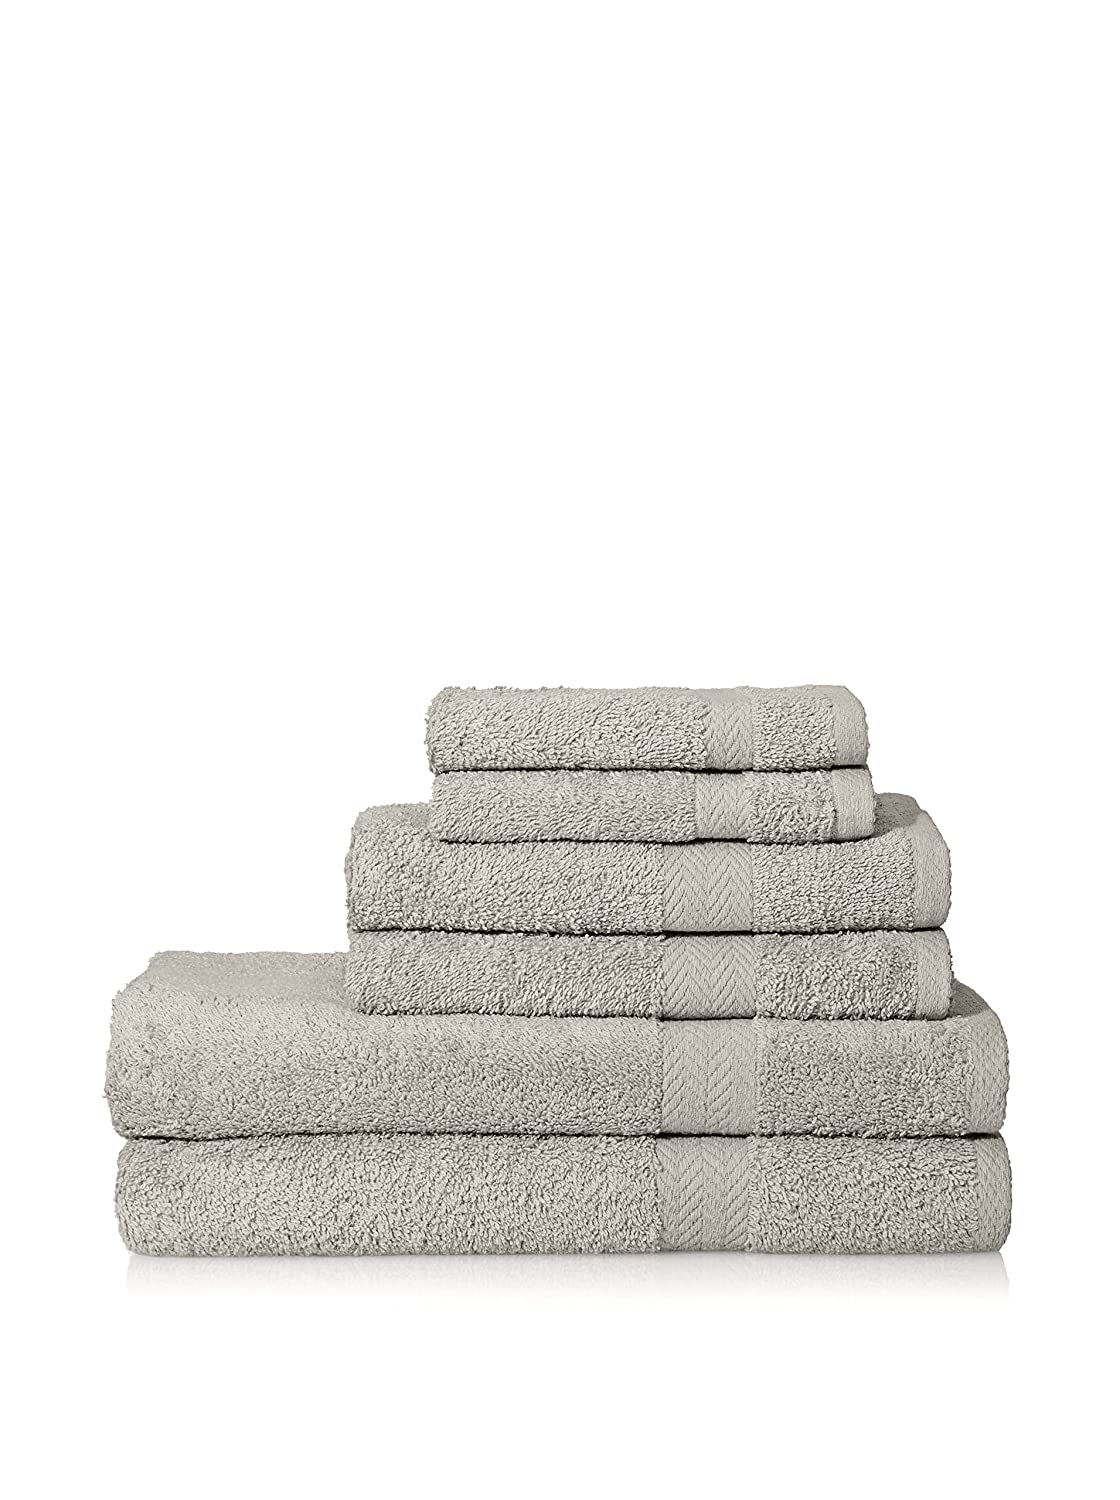 THE DELUXE/ESPALMA Towel Set, Bermuda, 6 Piece COBRA TRADING CORP. 052501852756